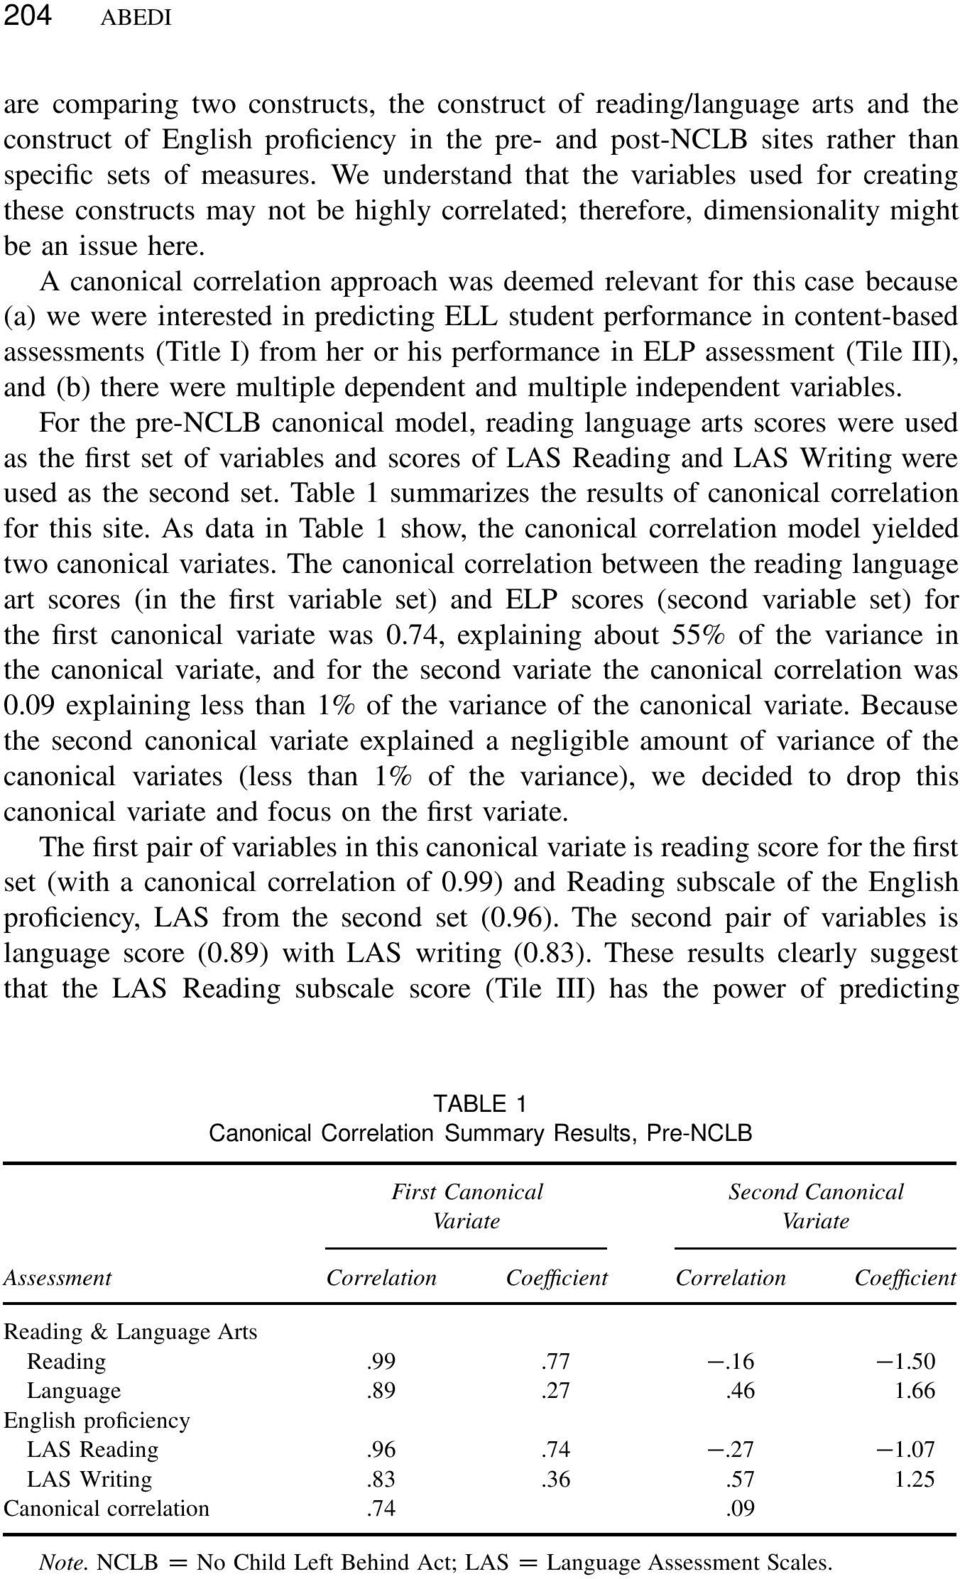 A canonical correlation approach was deemed relevant for this case because (a) we were interested in predicting ELL student performance in content-based assessments (Title I) from her or his